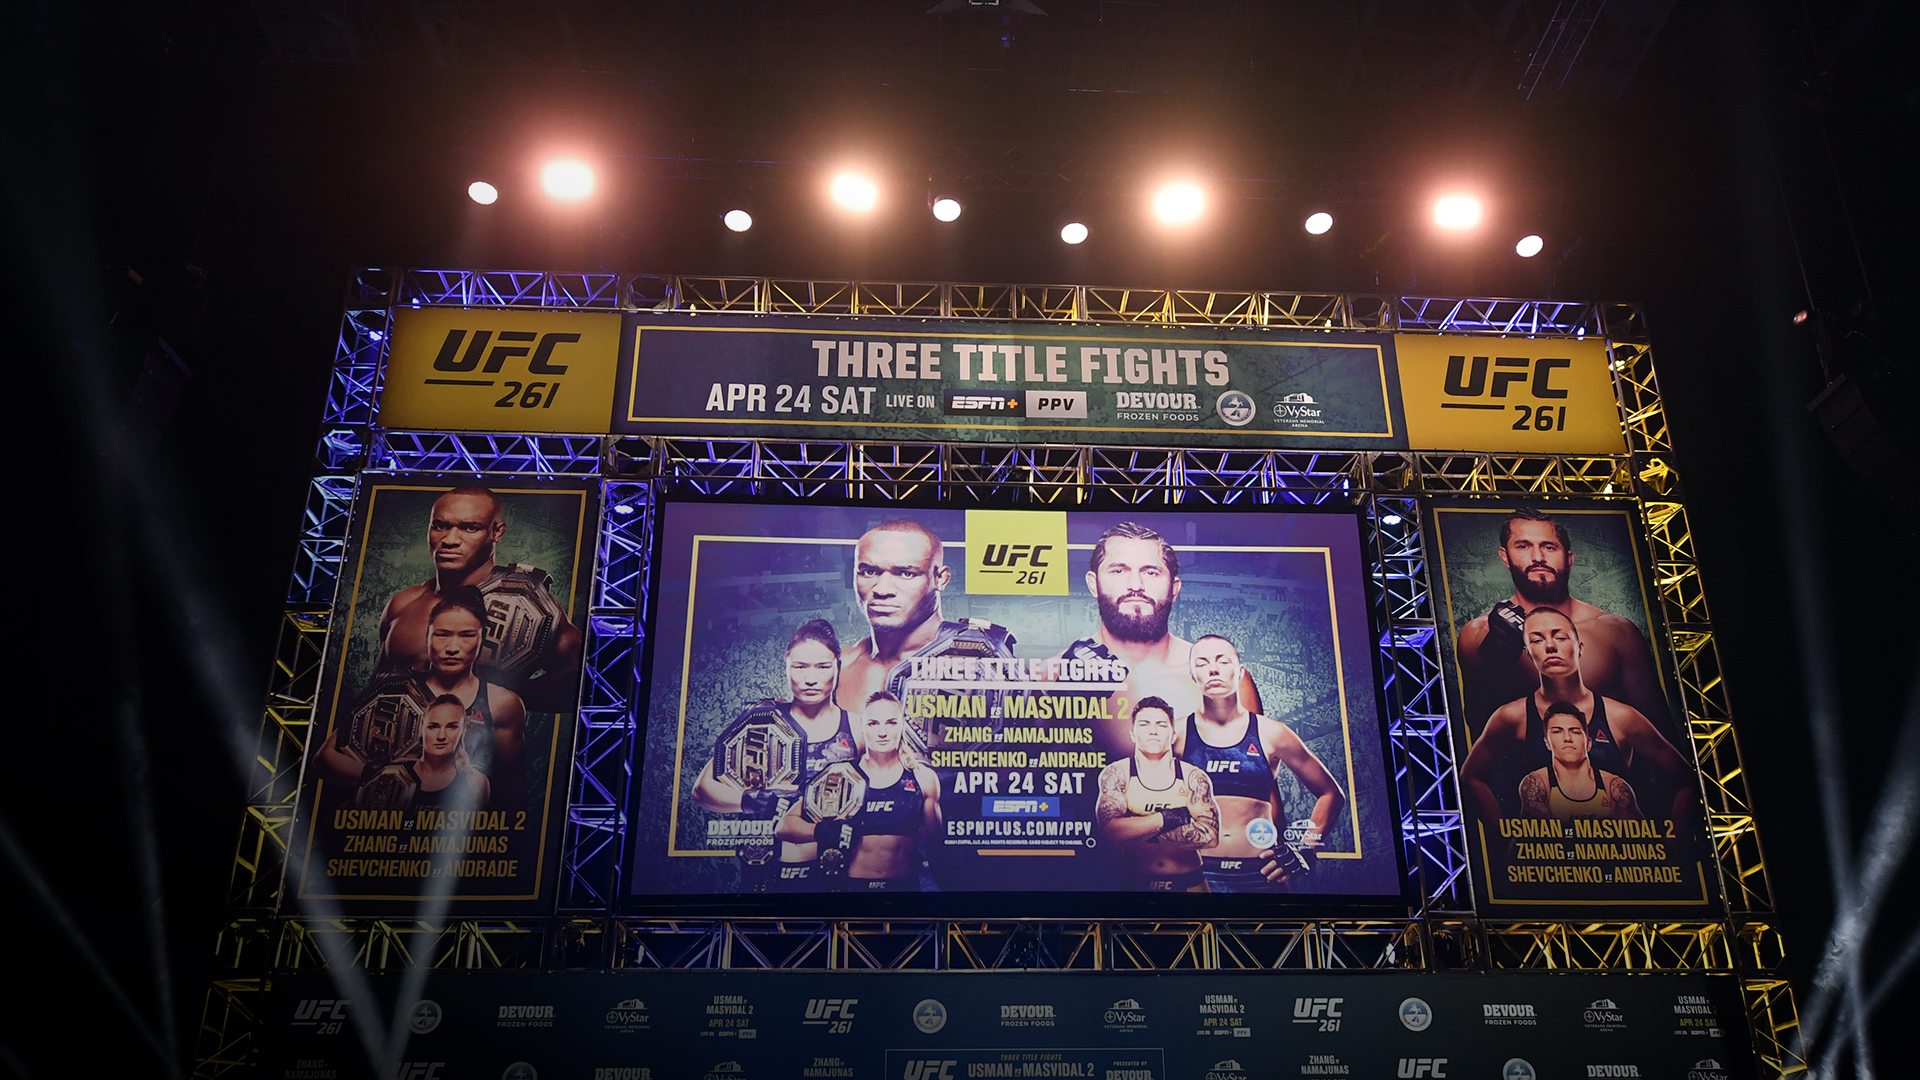 A general view of the stage prior to the UFC 261 press conference at VyStar Veterans Memorial Arena on April 22, 2021 in Jacksonville, Florida. (Photo by Josh Hedges/Zuffa LLC)